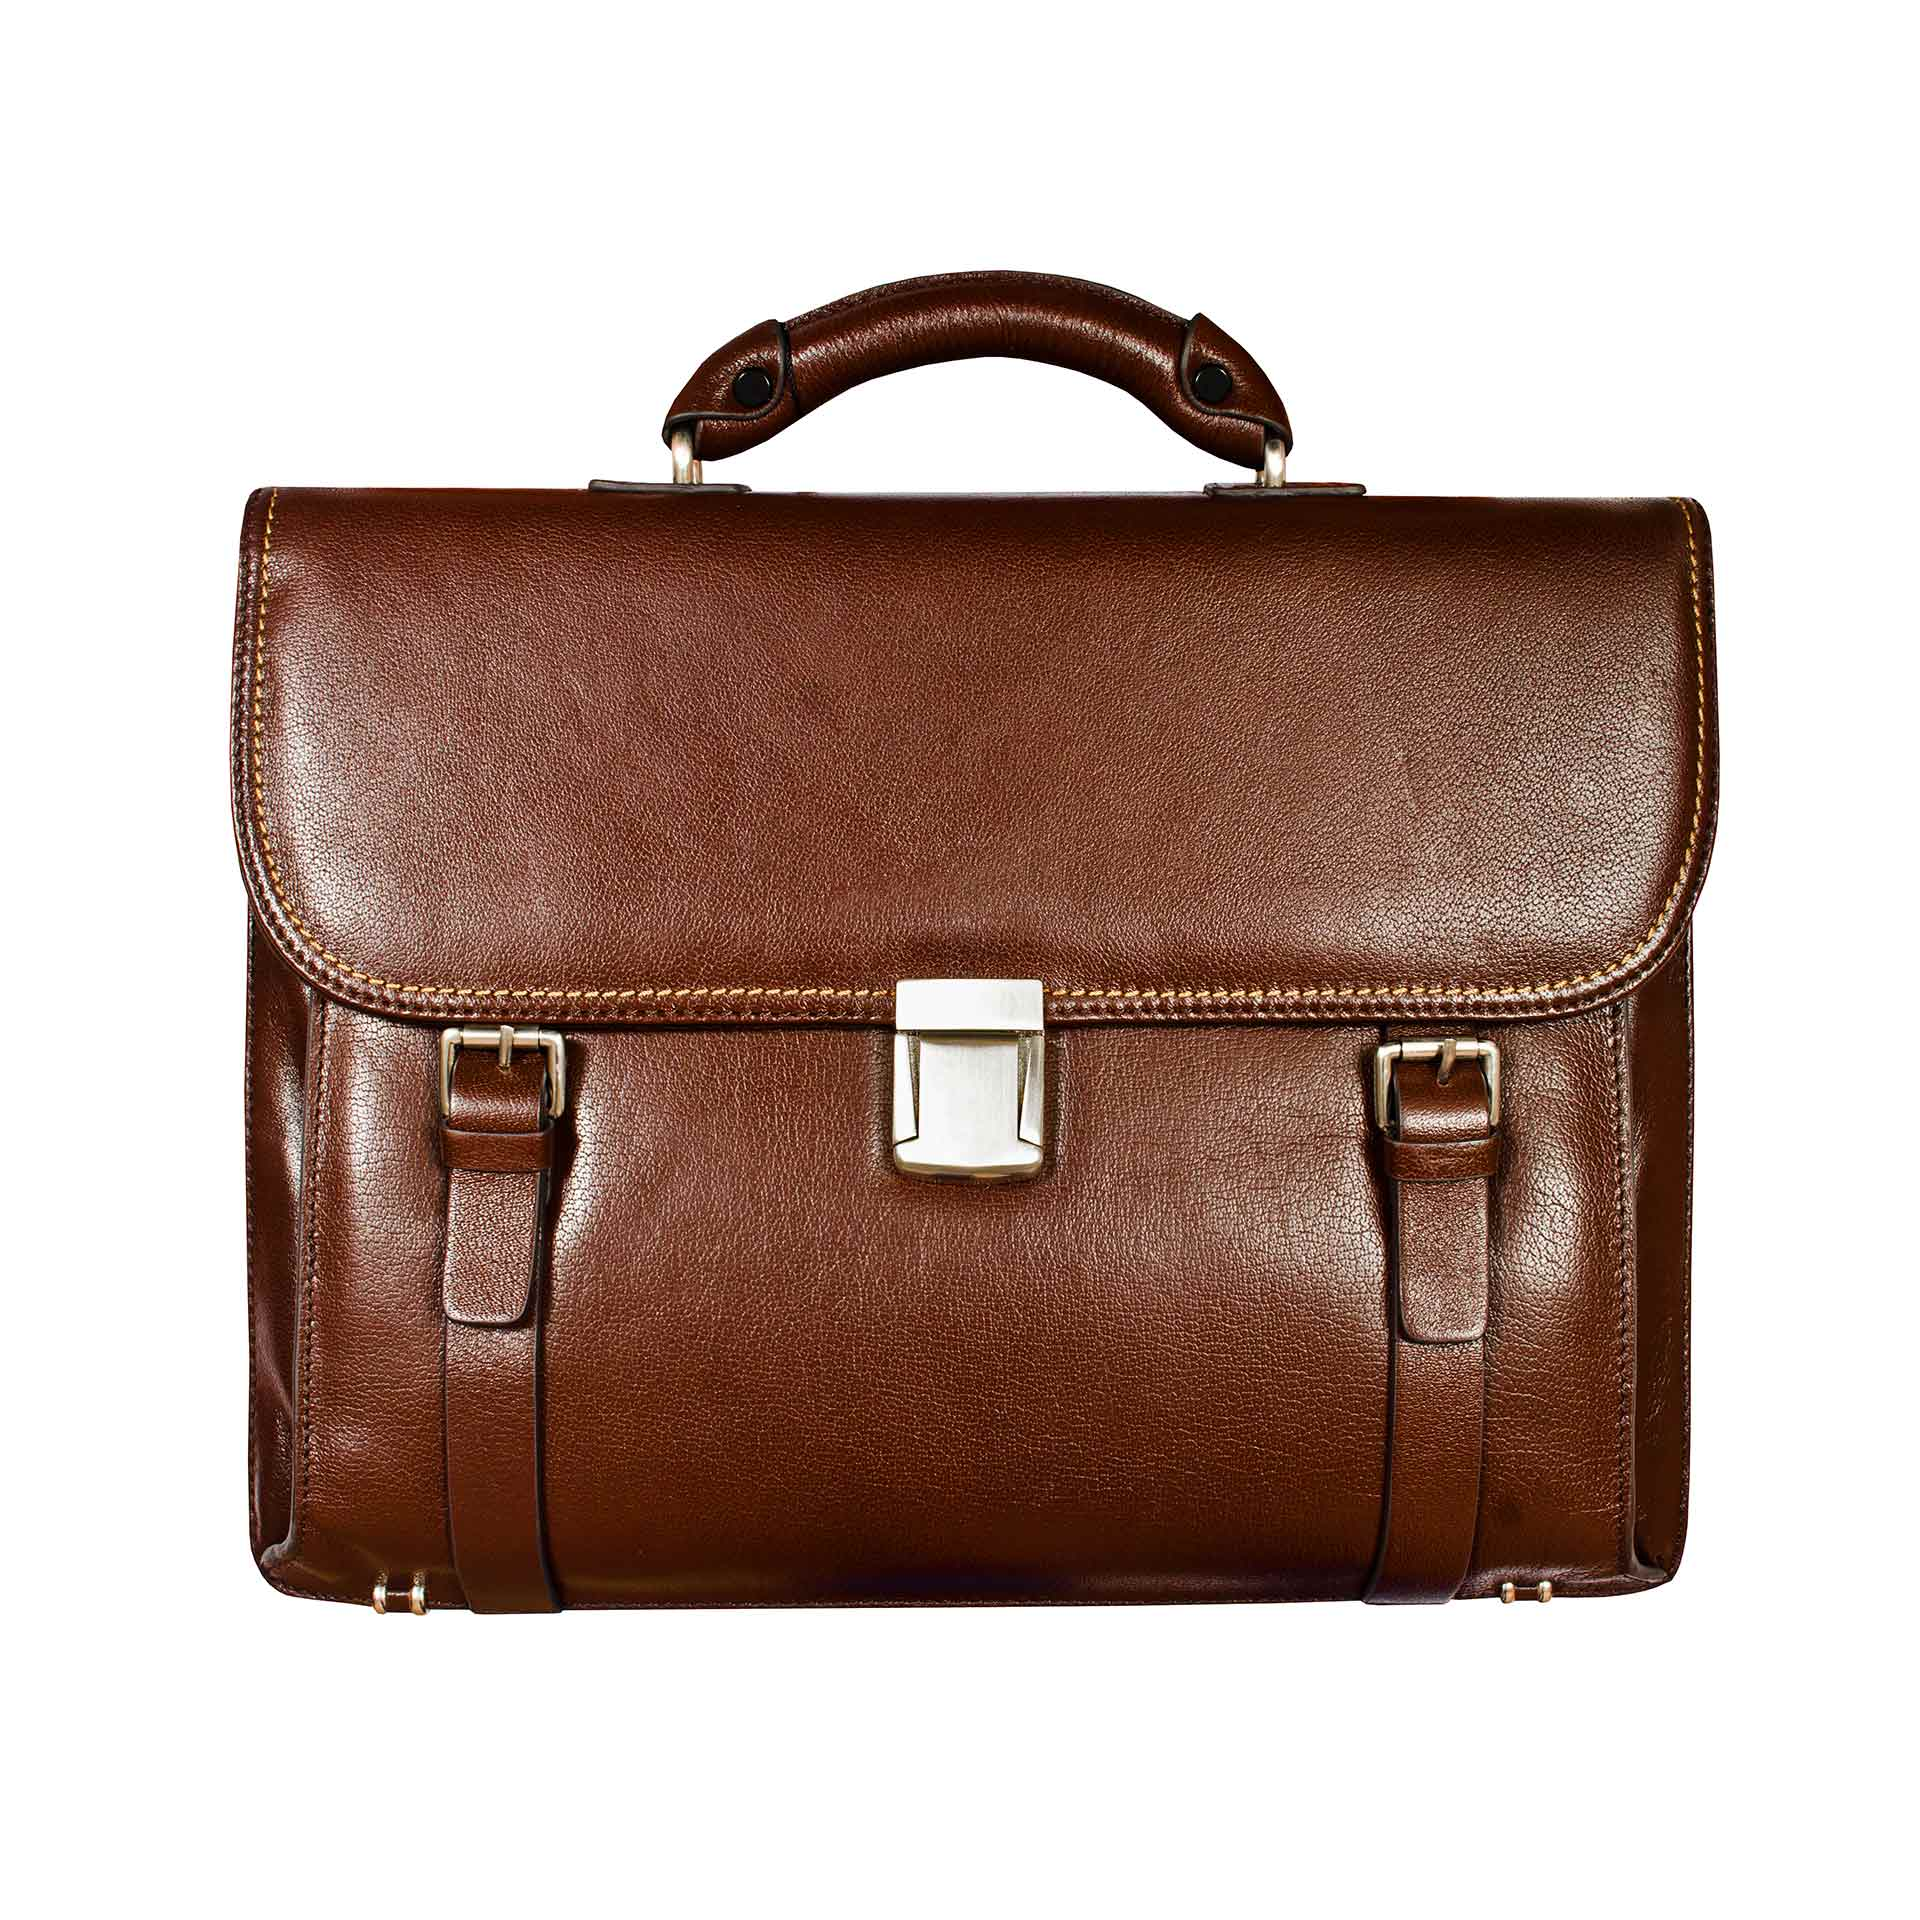 Brown-leather-briefcase-isolated-on-white-background